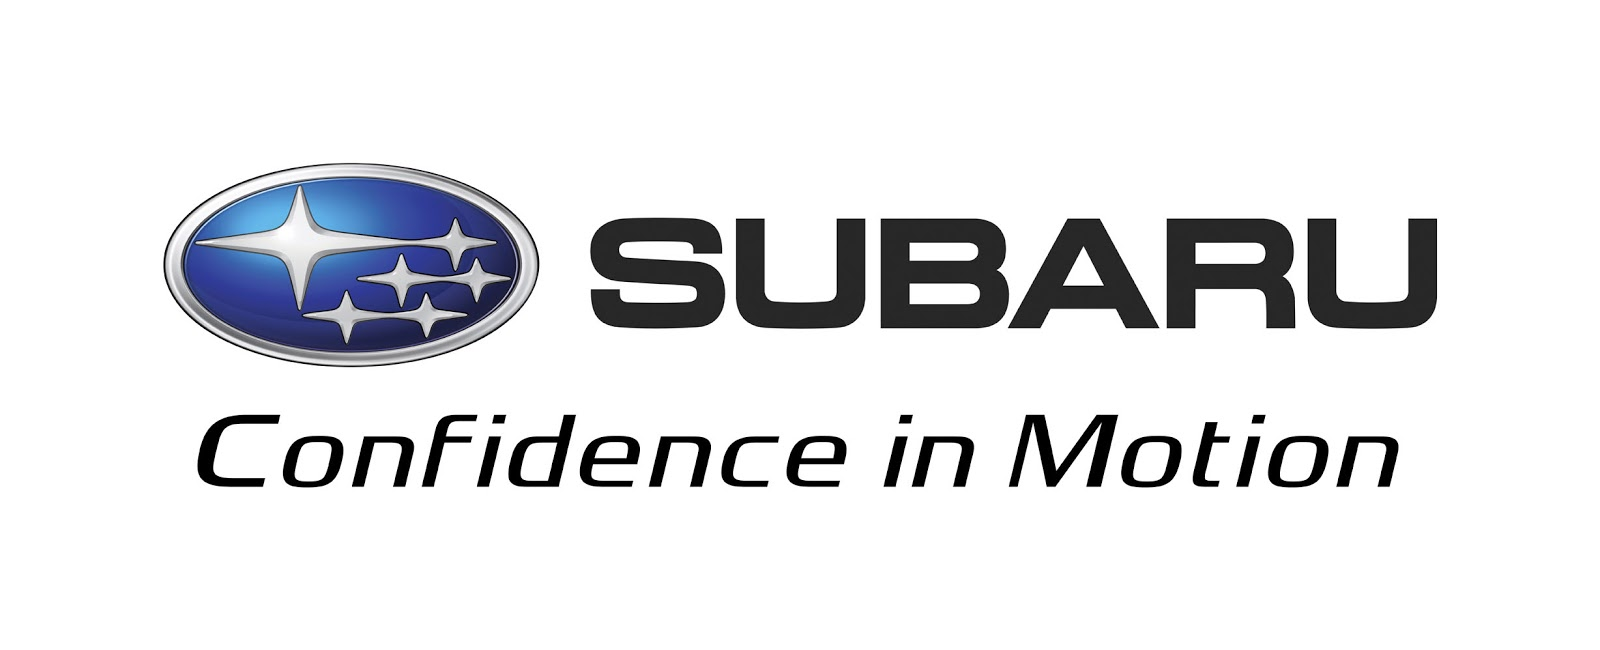 Thelen Subaru in Bay City, Michigan